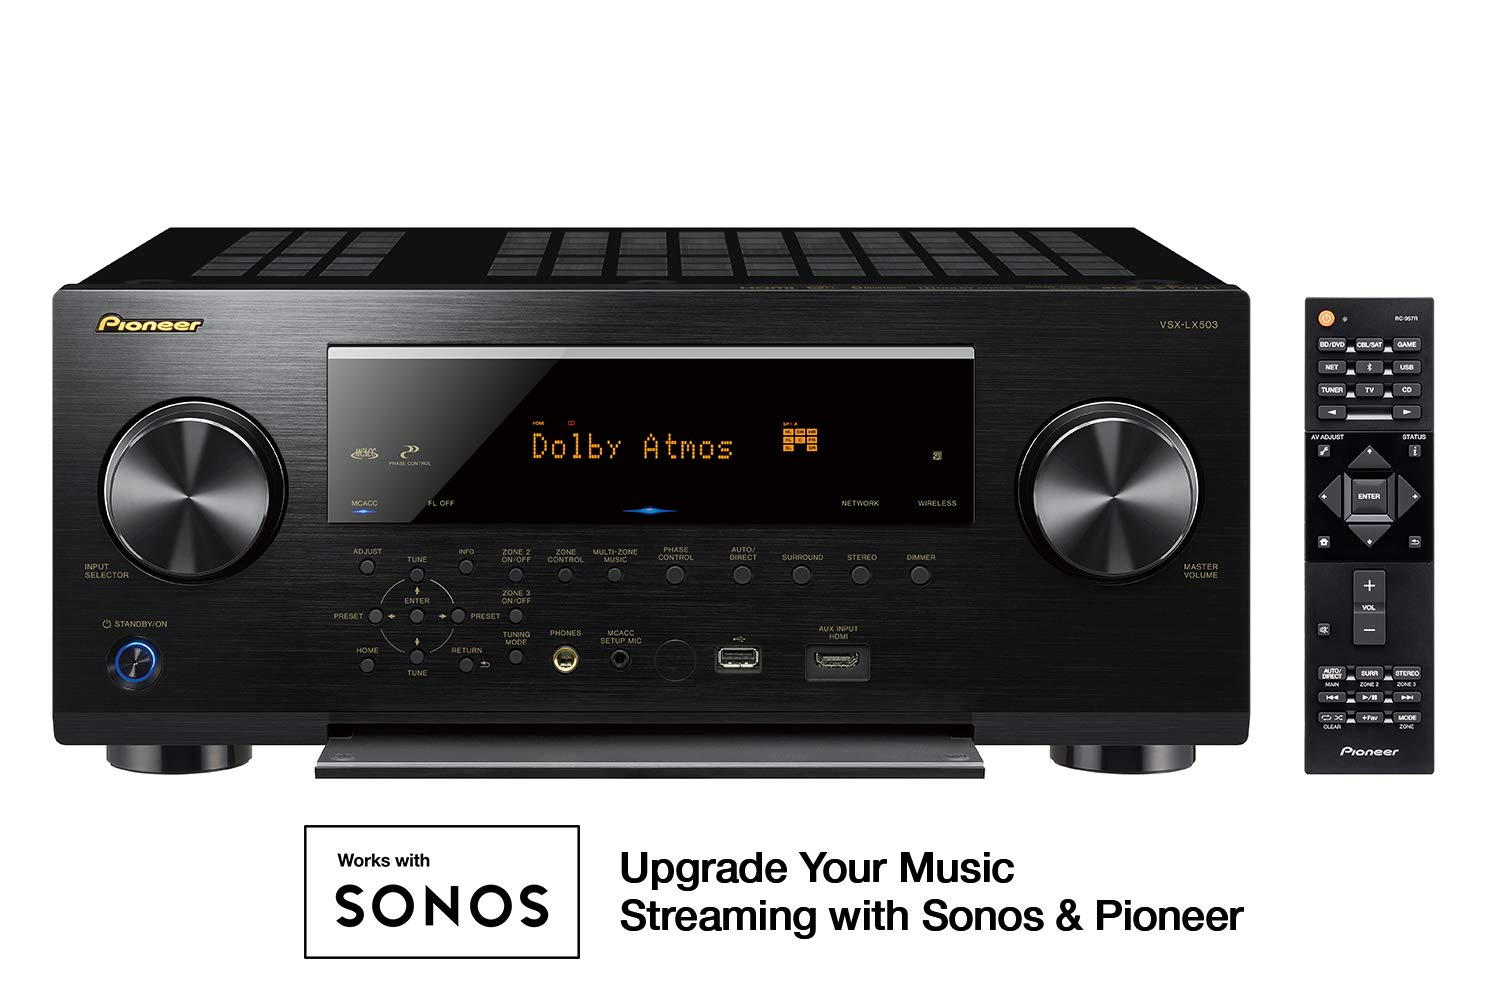 Amazon.com: Pioneer VSX-LX503 9.2 Channel 4k UltraHD Network A/V Receiver  Black: Electronics